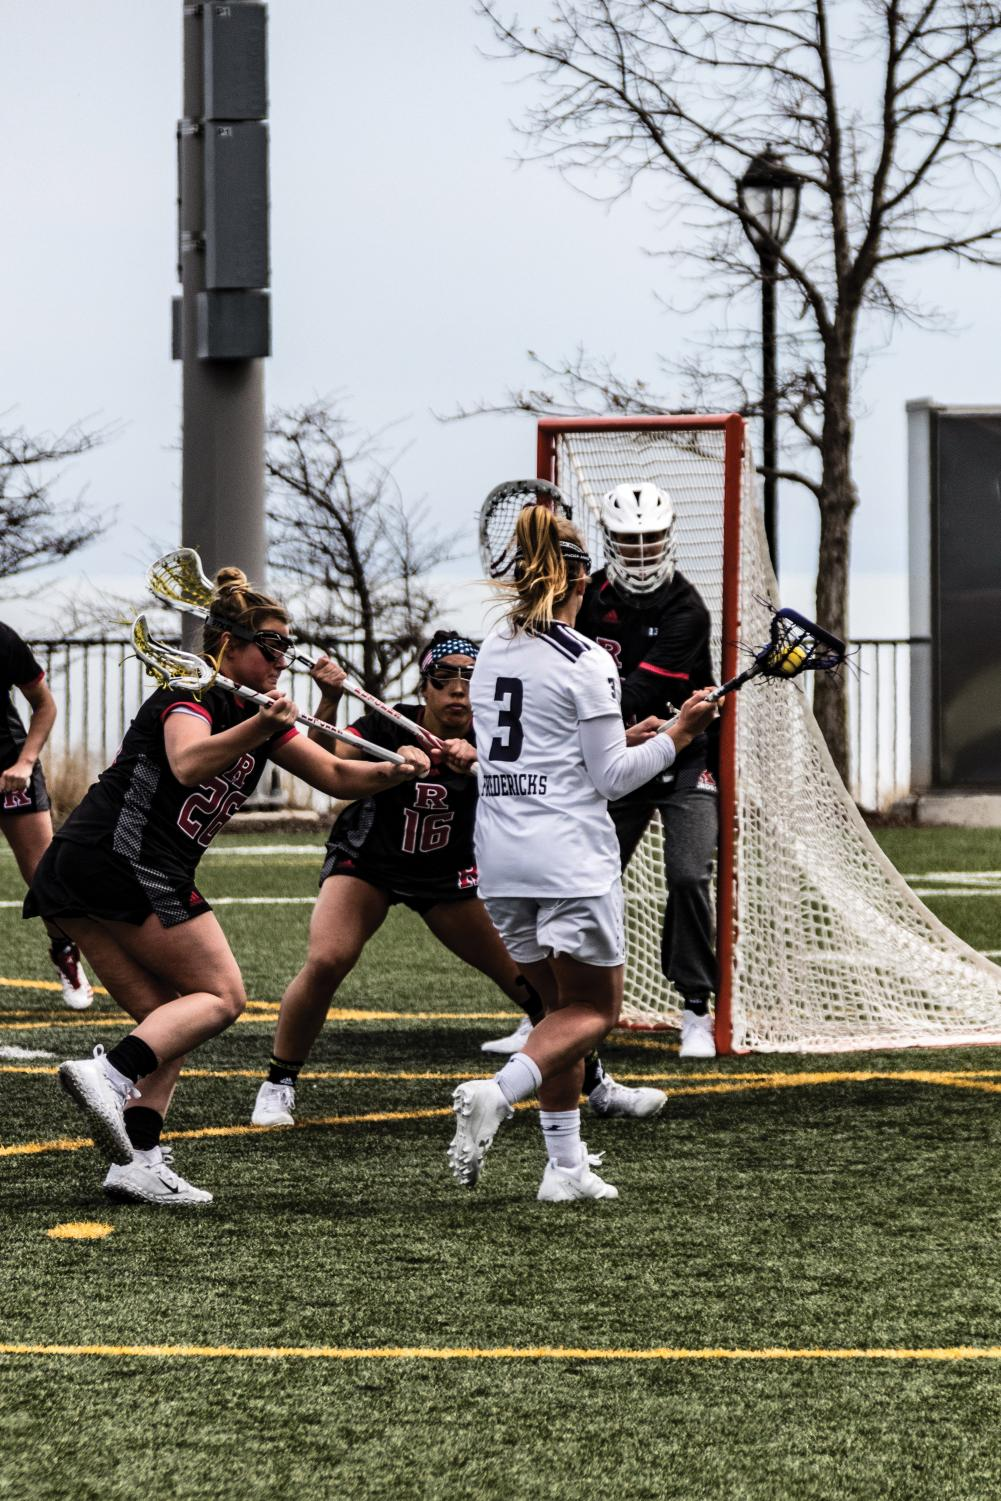 Shelby Fredericks eyes the Rutgers defense. The senior attacker registered nine assists, falling one short of the program record, in Northwestern's 19-7 win Saturday.